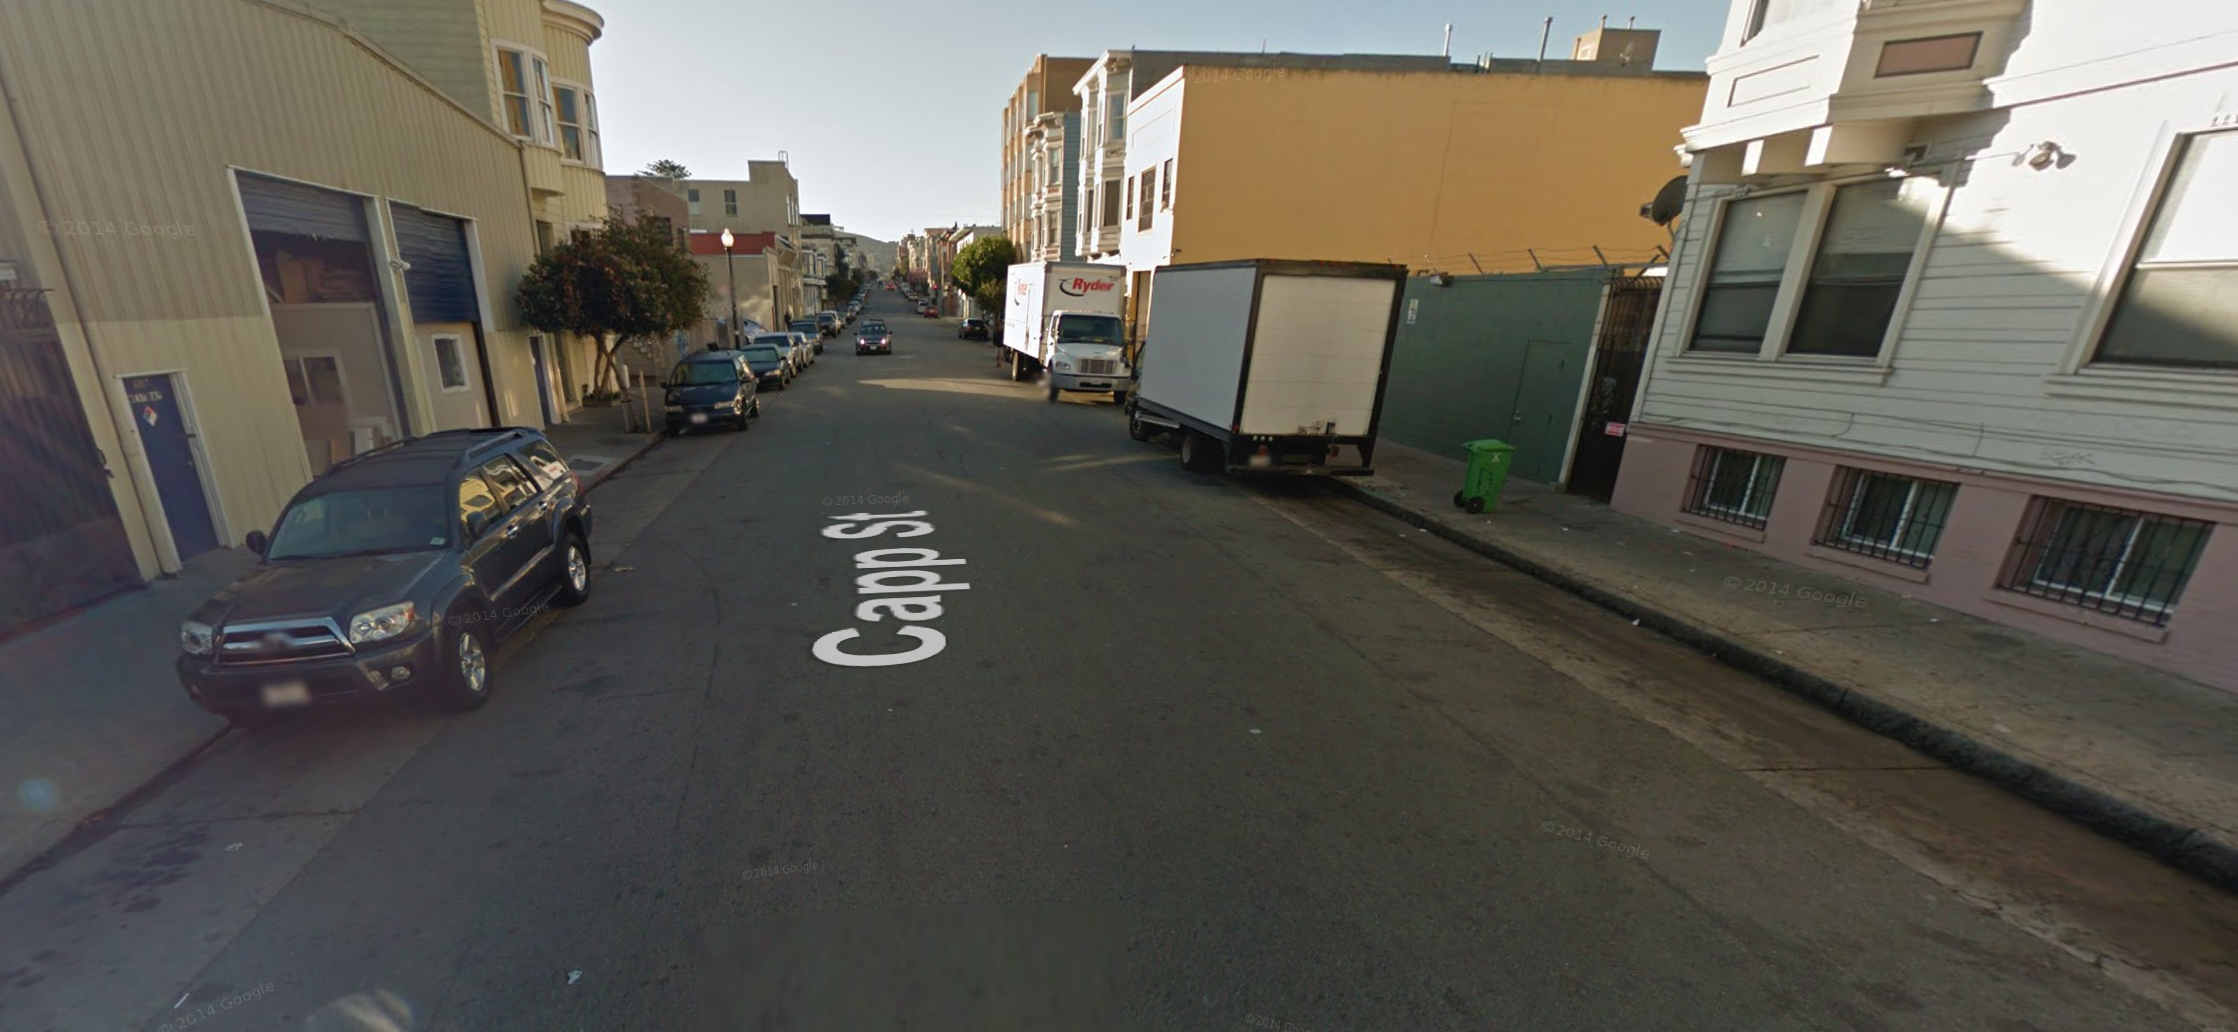 30-Year-Old Woman Found Unconscious on Capp St. (Update)